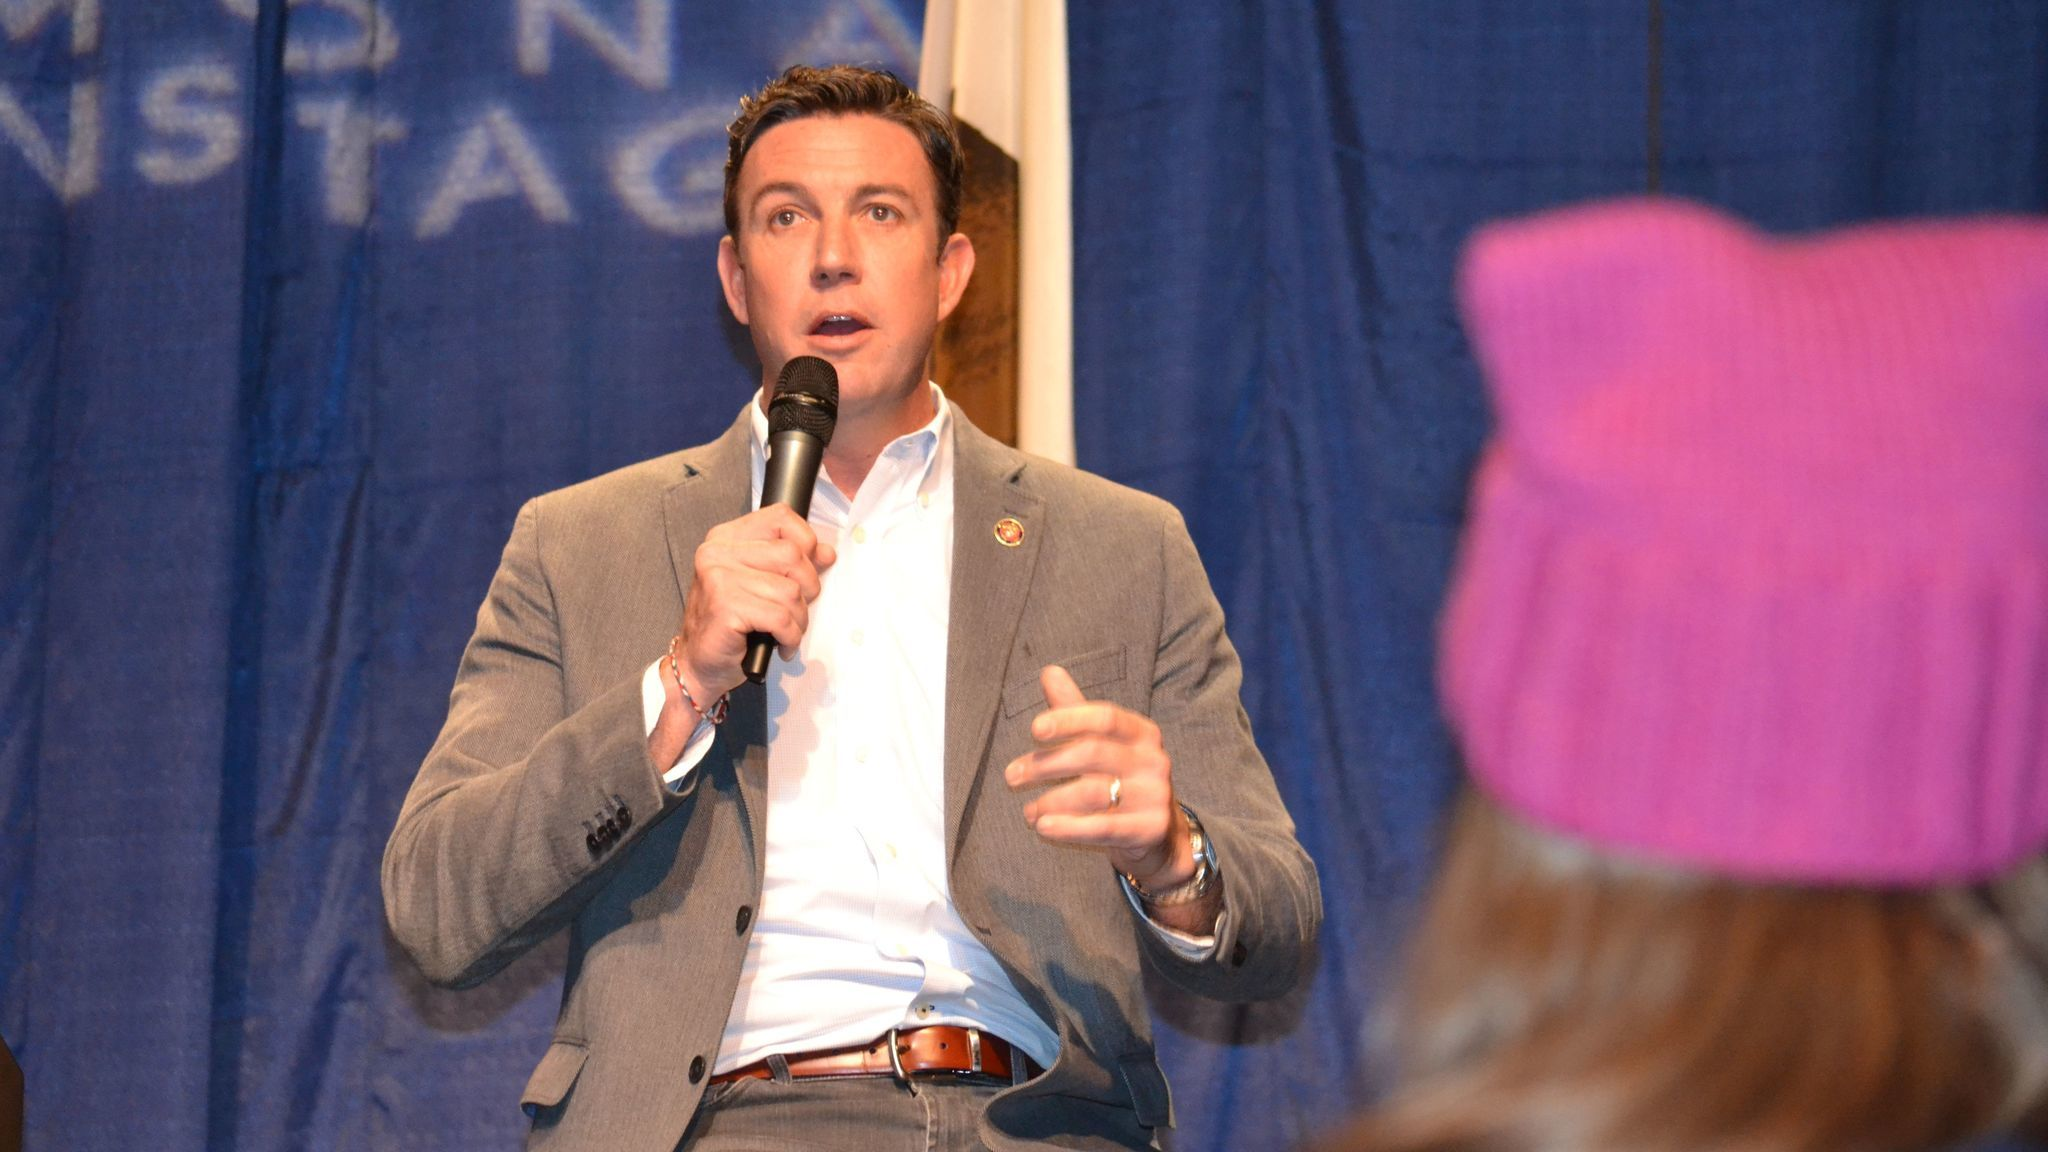 Congressman Duncan Hunter answers a question about personal expenses charged to his campaign account. Hunter said they were mistakes made by his campaign and all the charges have been repaid.